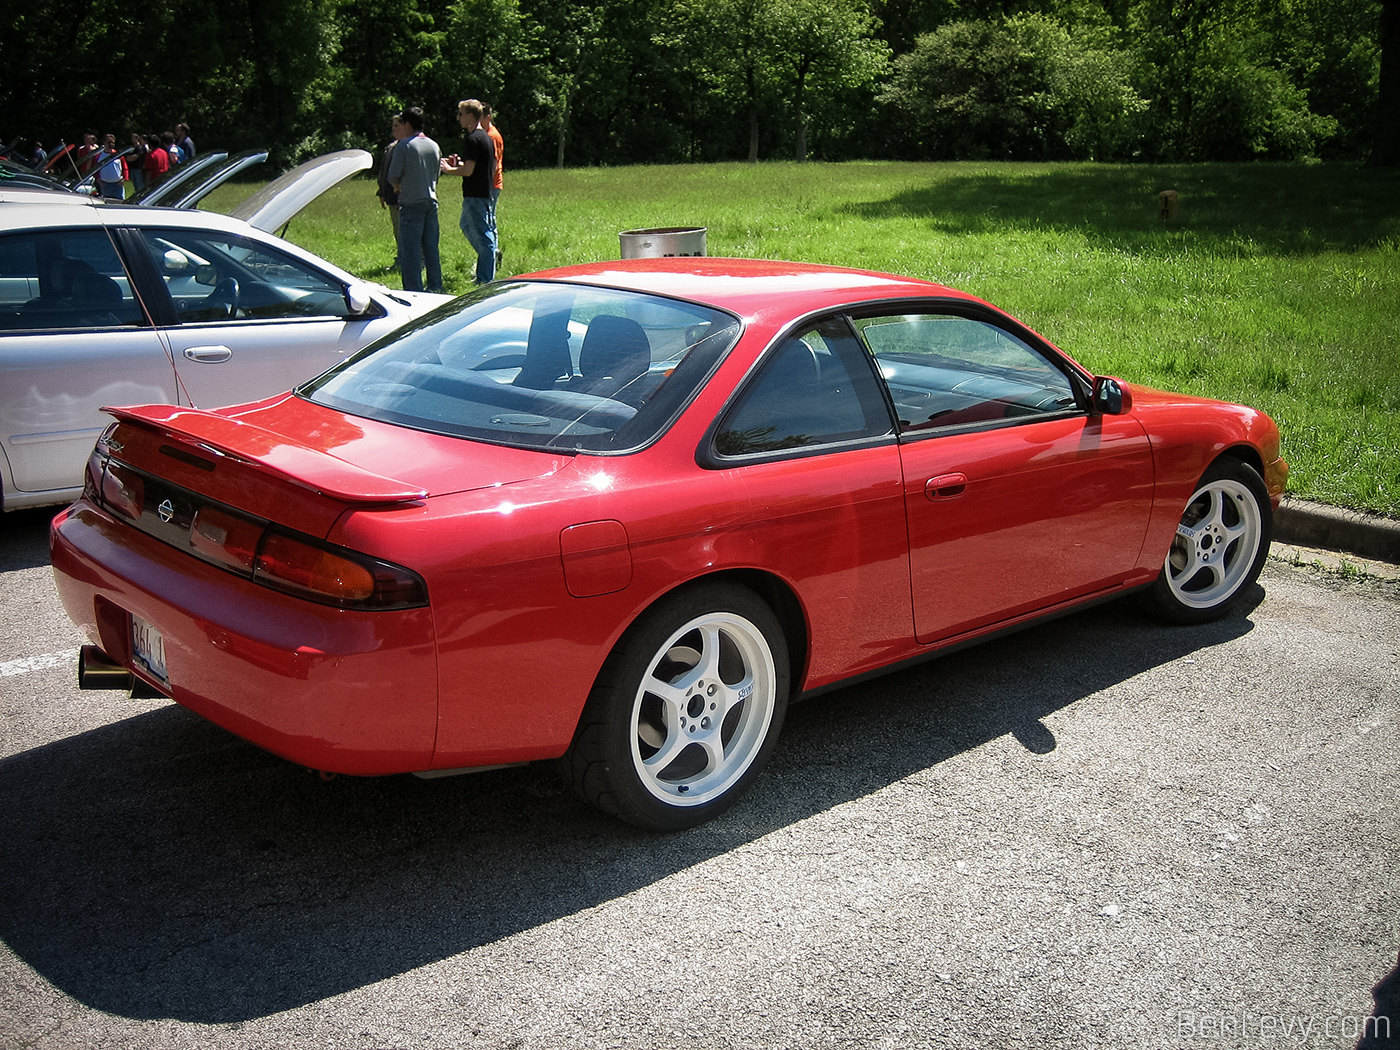 Red 240sx Benlevy Com